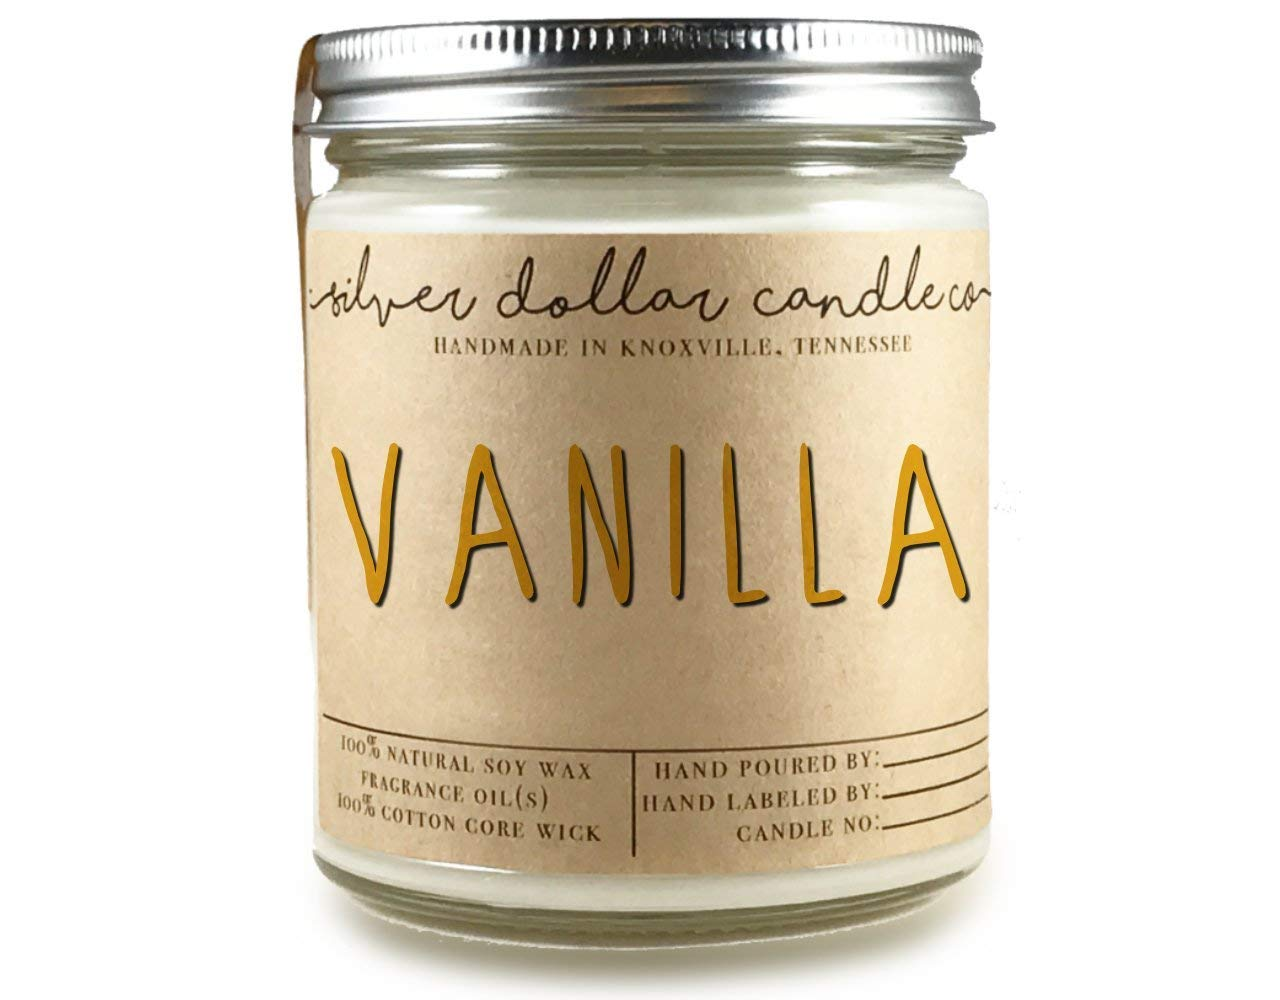 Vanilla Scented 8oz Candle 100% Soy by Silver Dollar Candle Co.